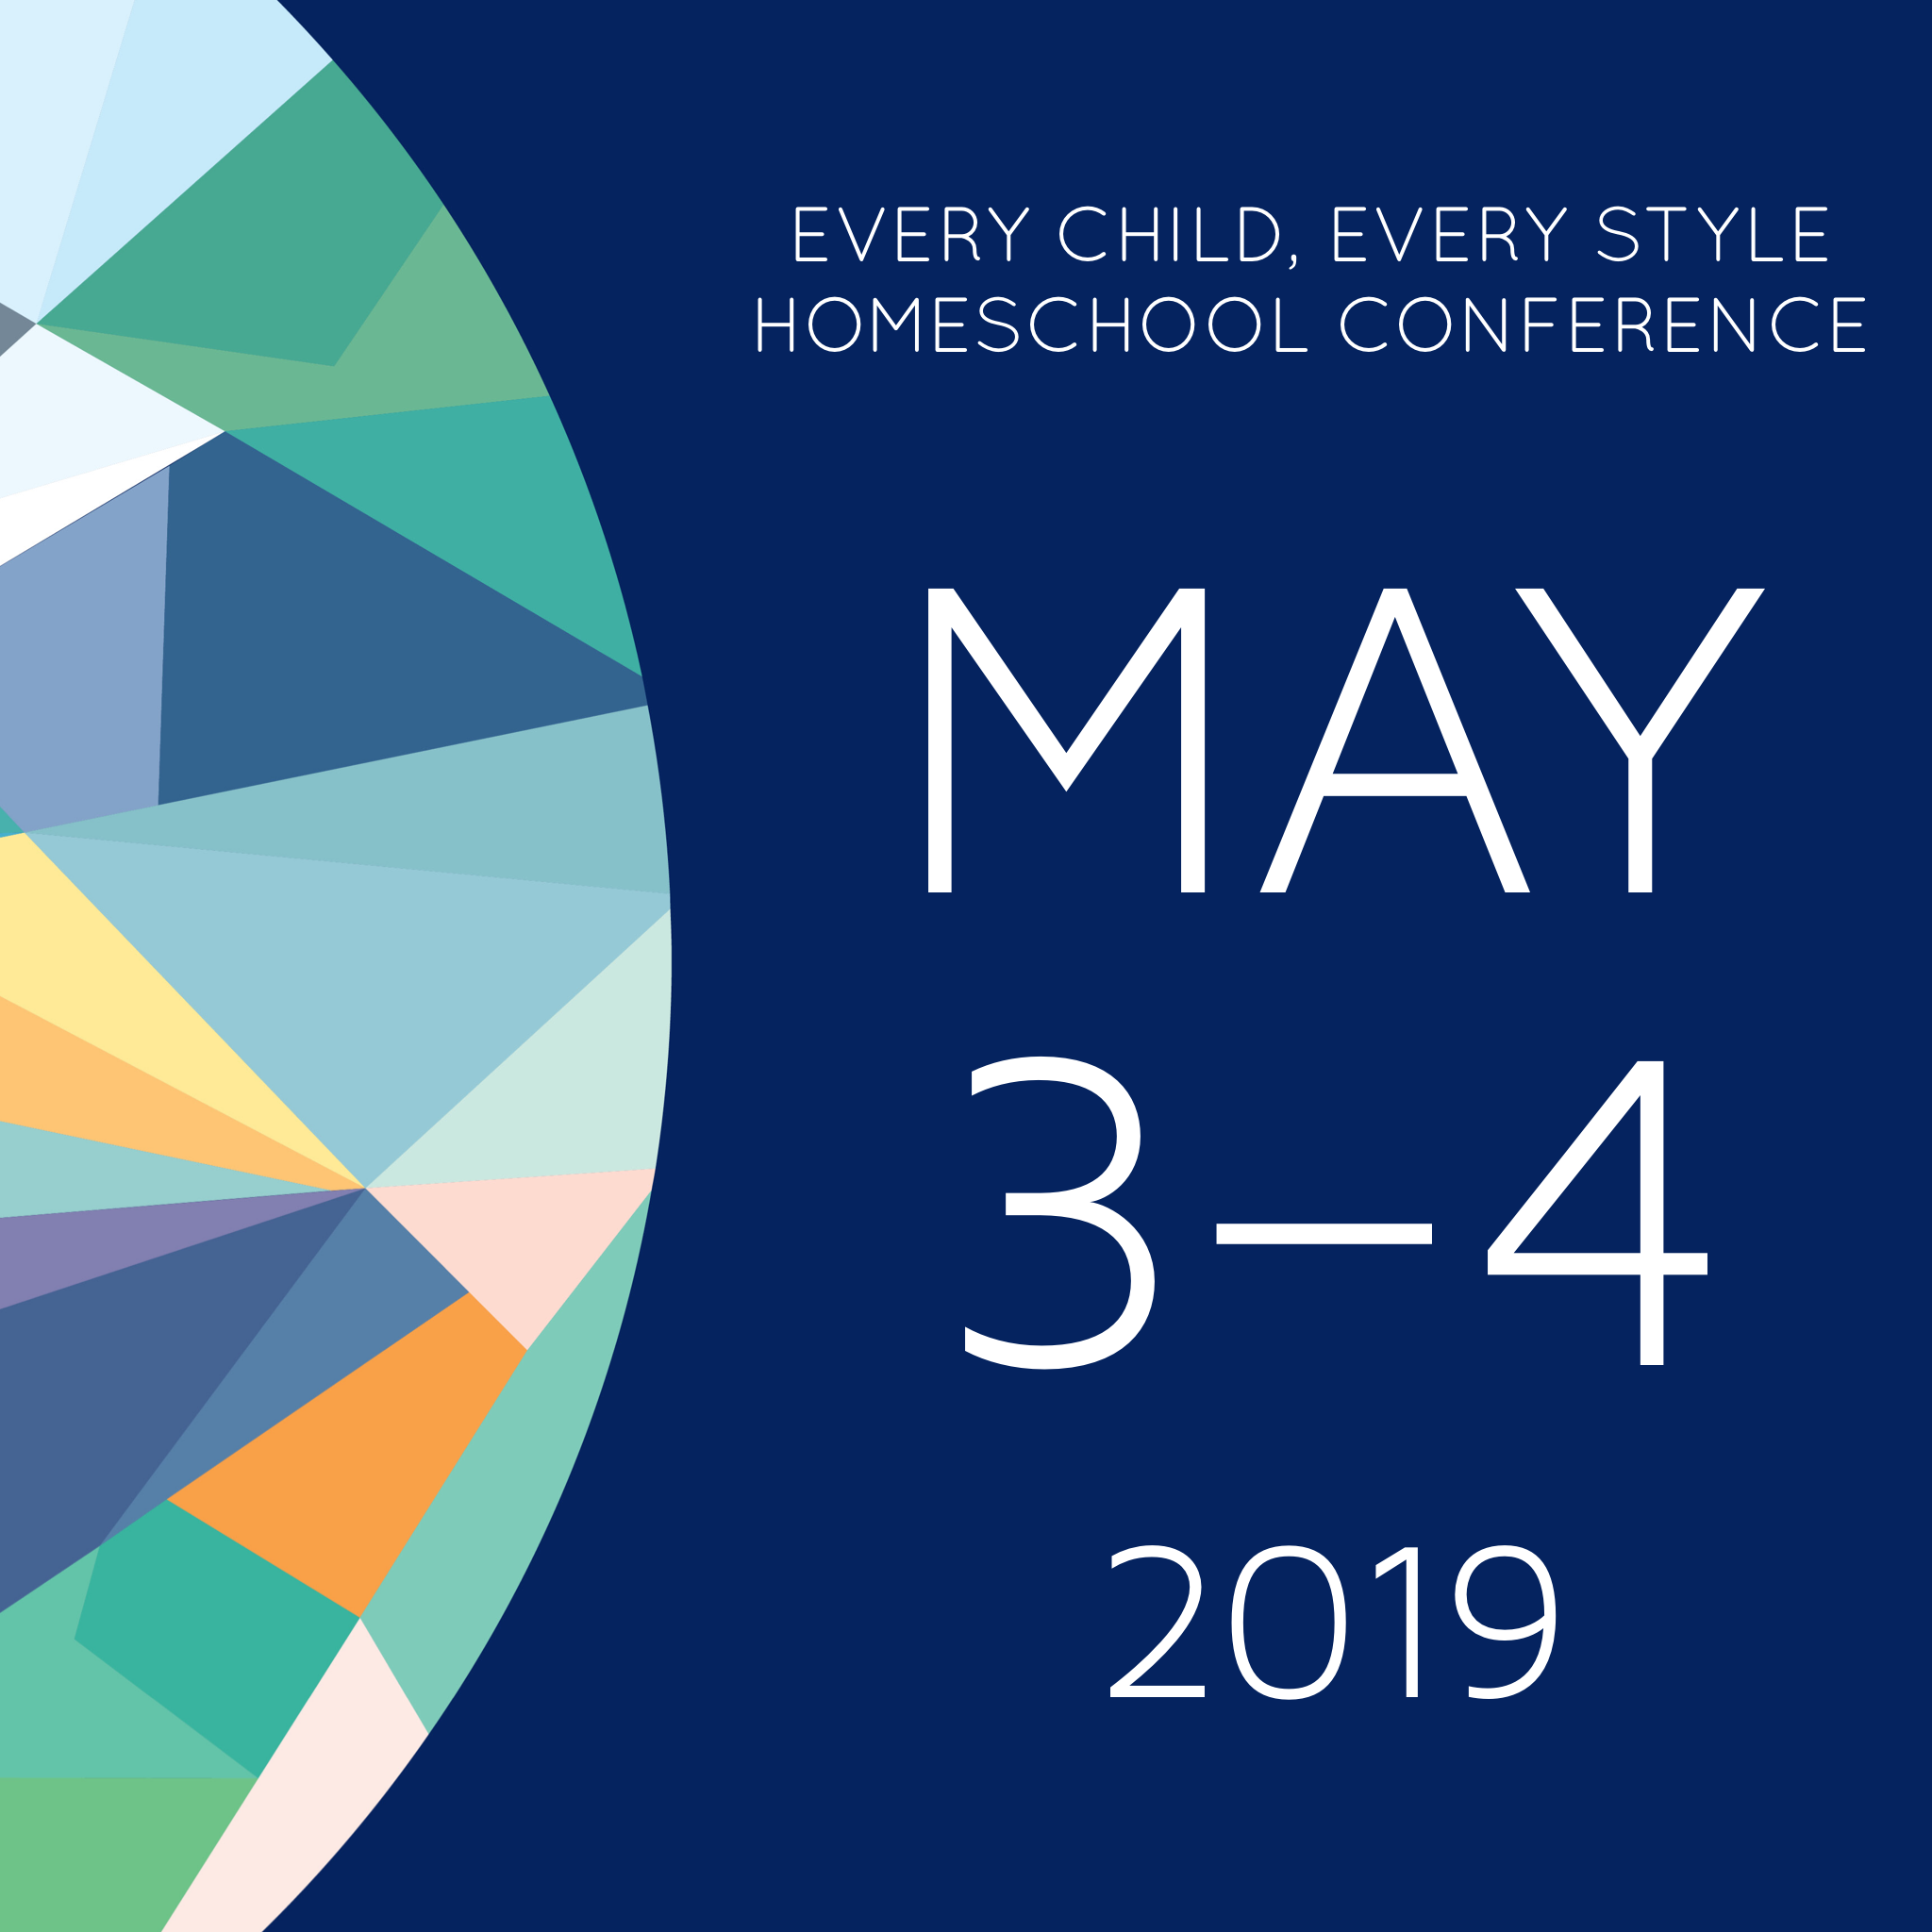 MAY 2019 Every Child Every Style Conference